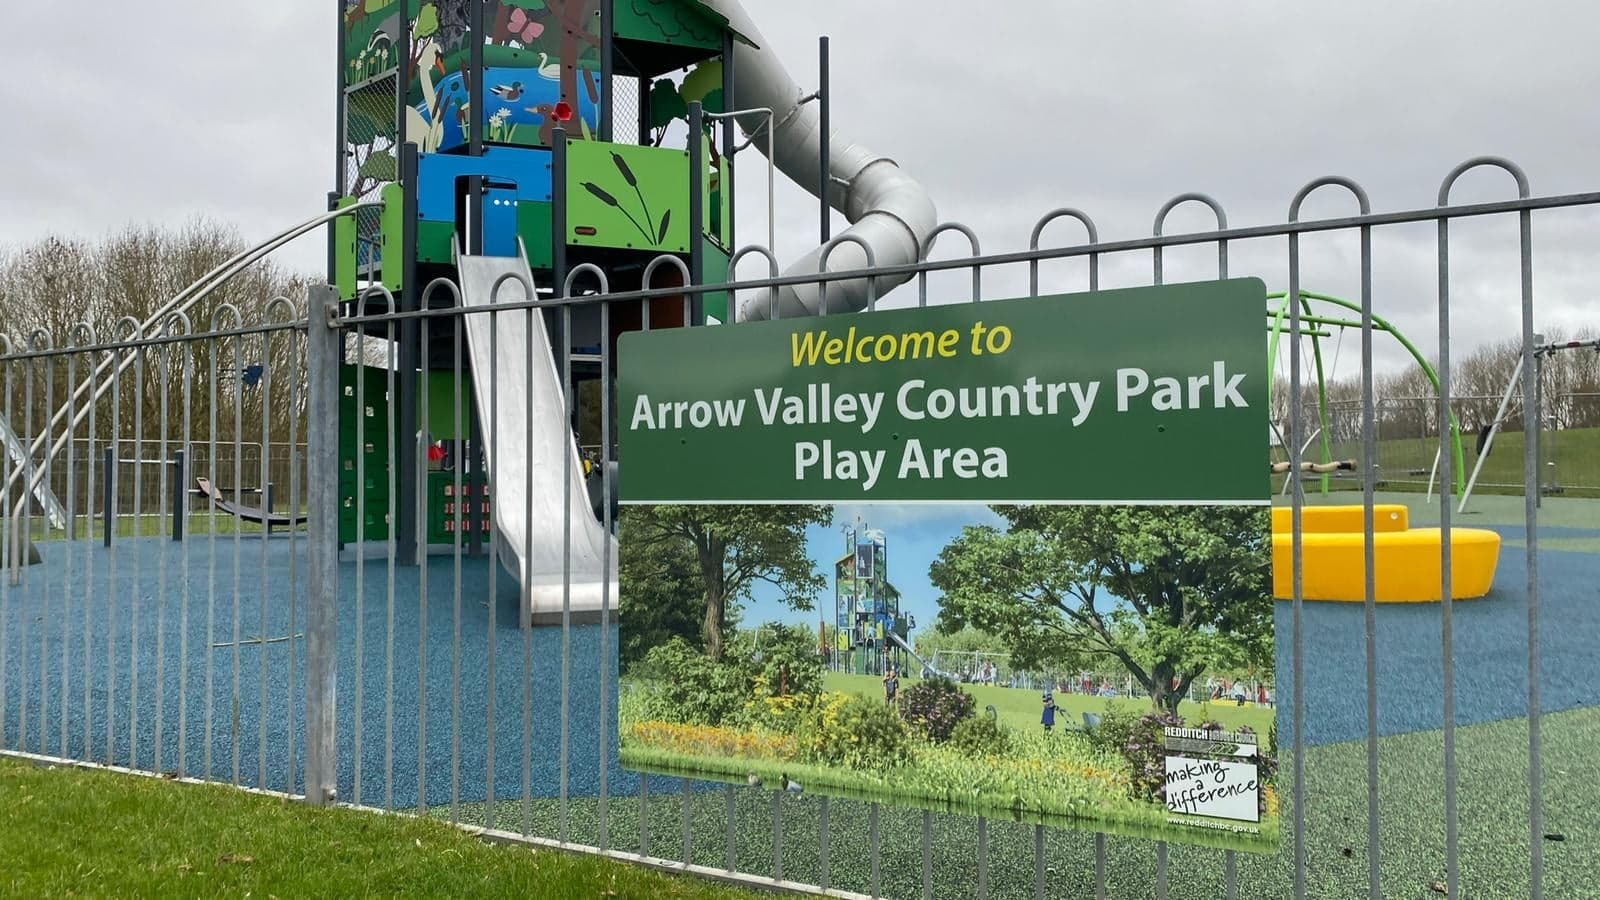 New Arrow Valley Country Park play area in Redditch